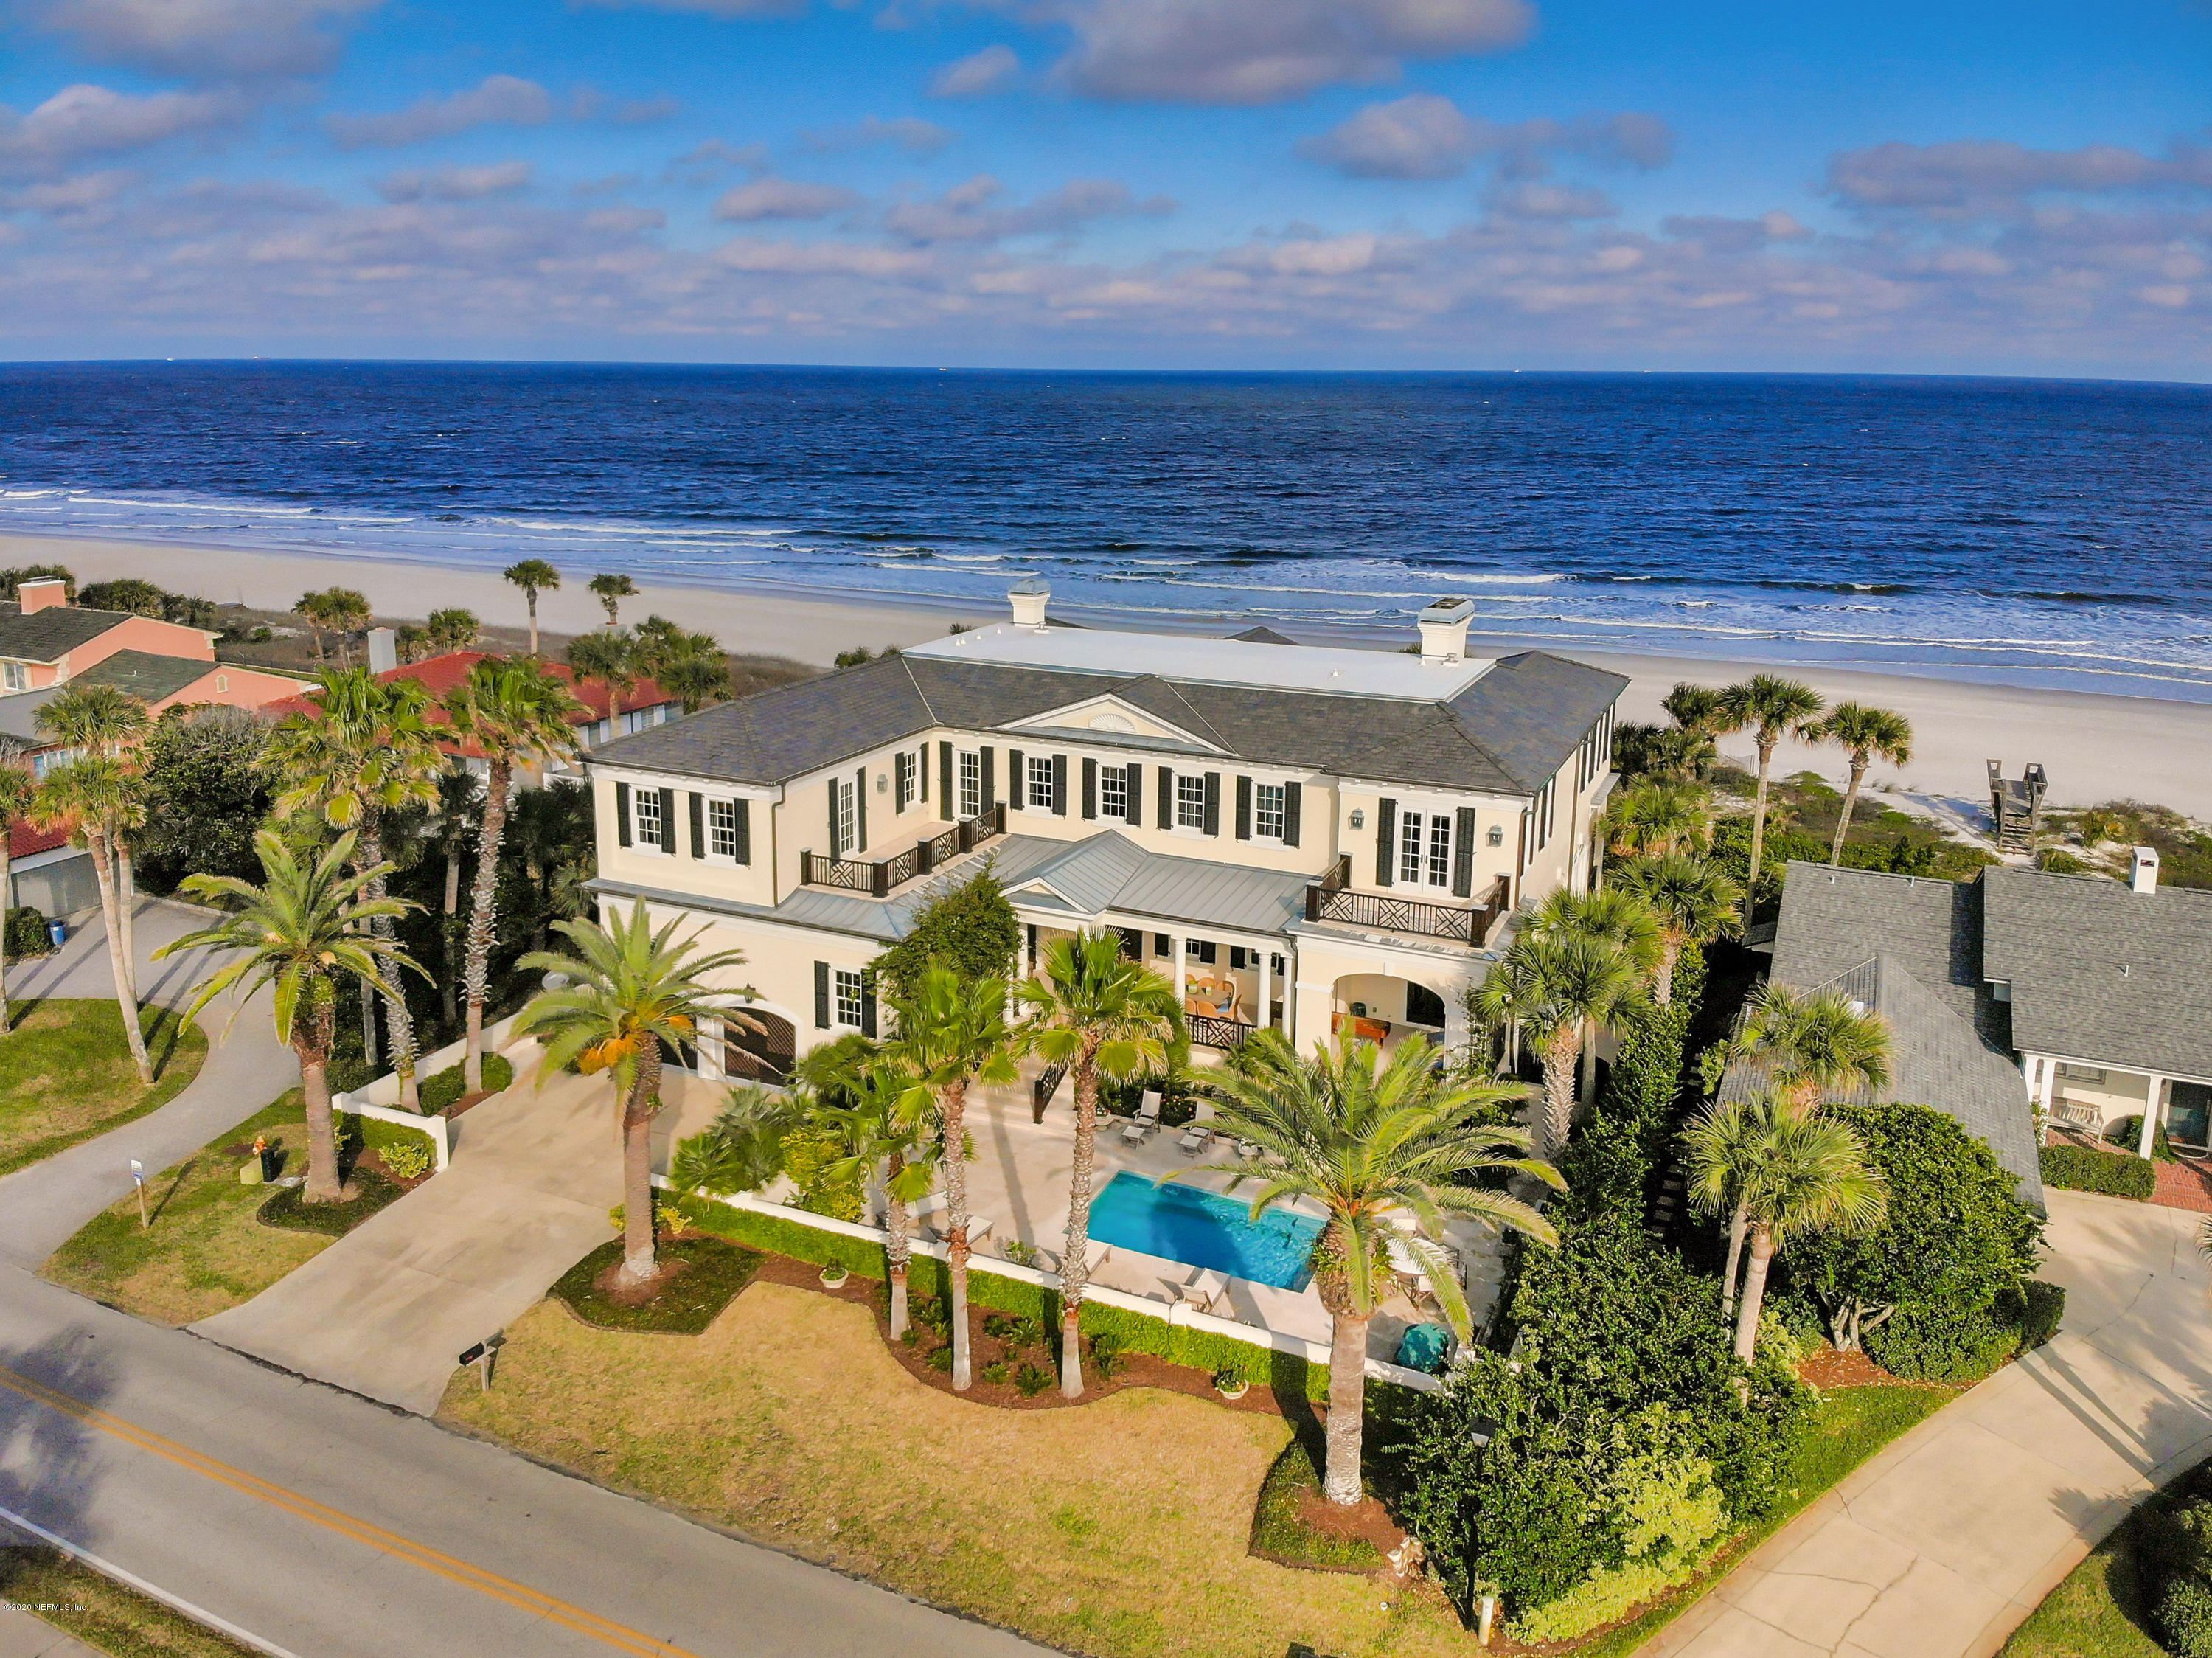 335 PONTE VEDRA, PONTE VEDRA BEACH, FLORIDA 32082, 7 Bedrooms Bedrooms, ,7 BathroomsBathrooms,Residential,For sale,PONTE VEDRA,1033082